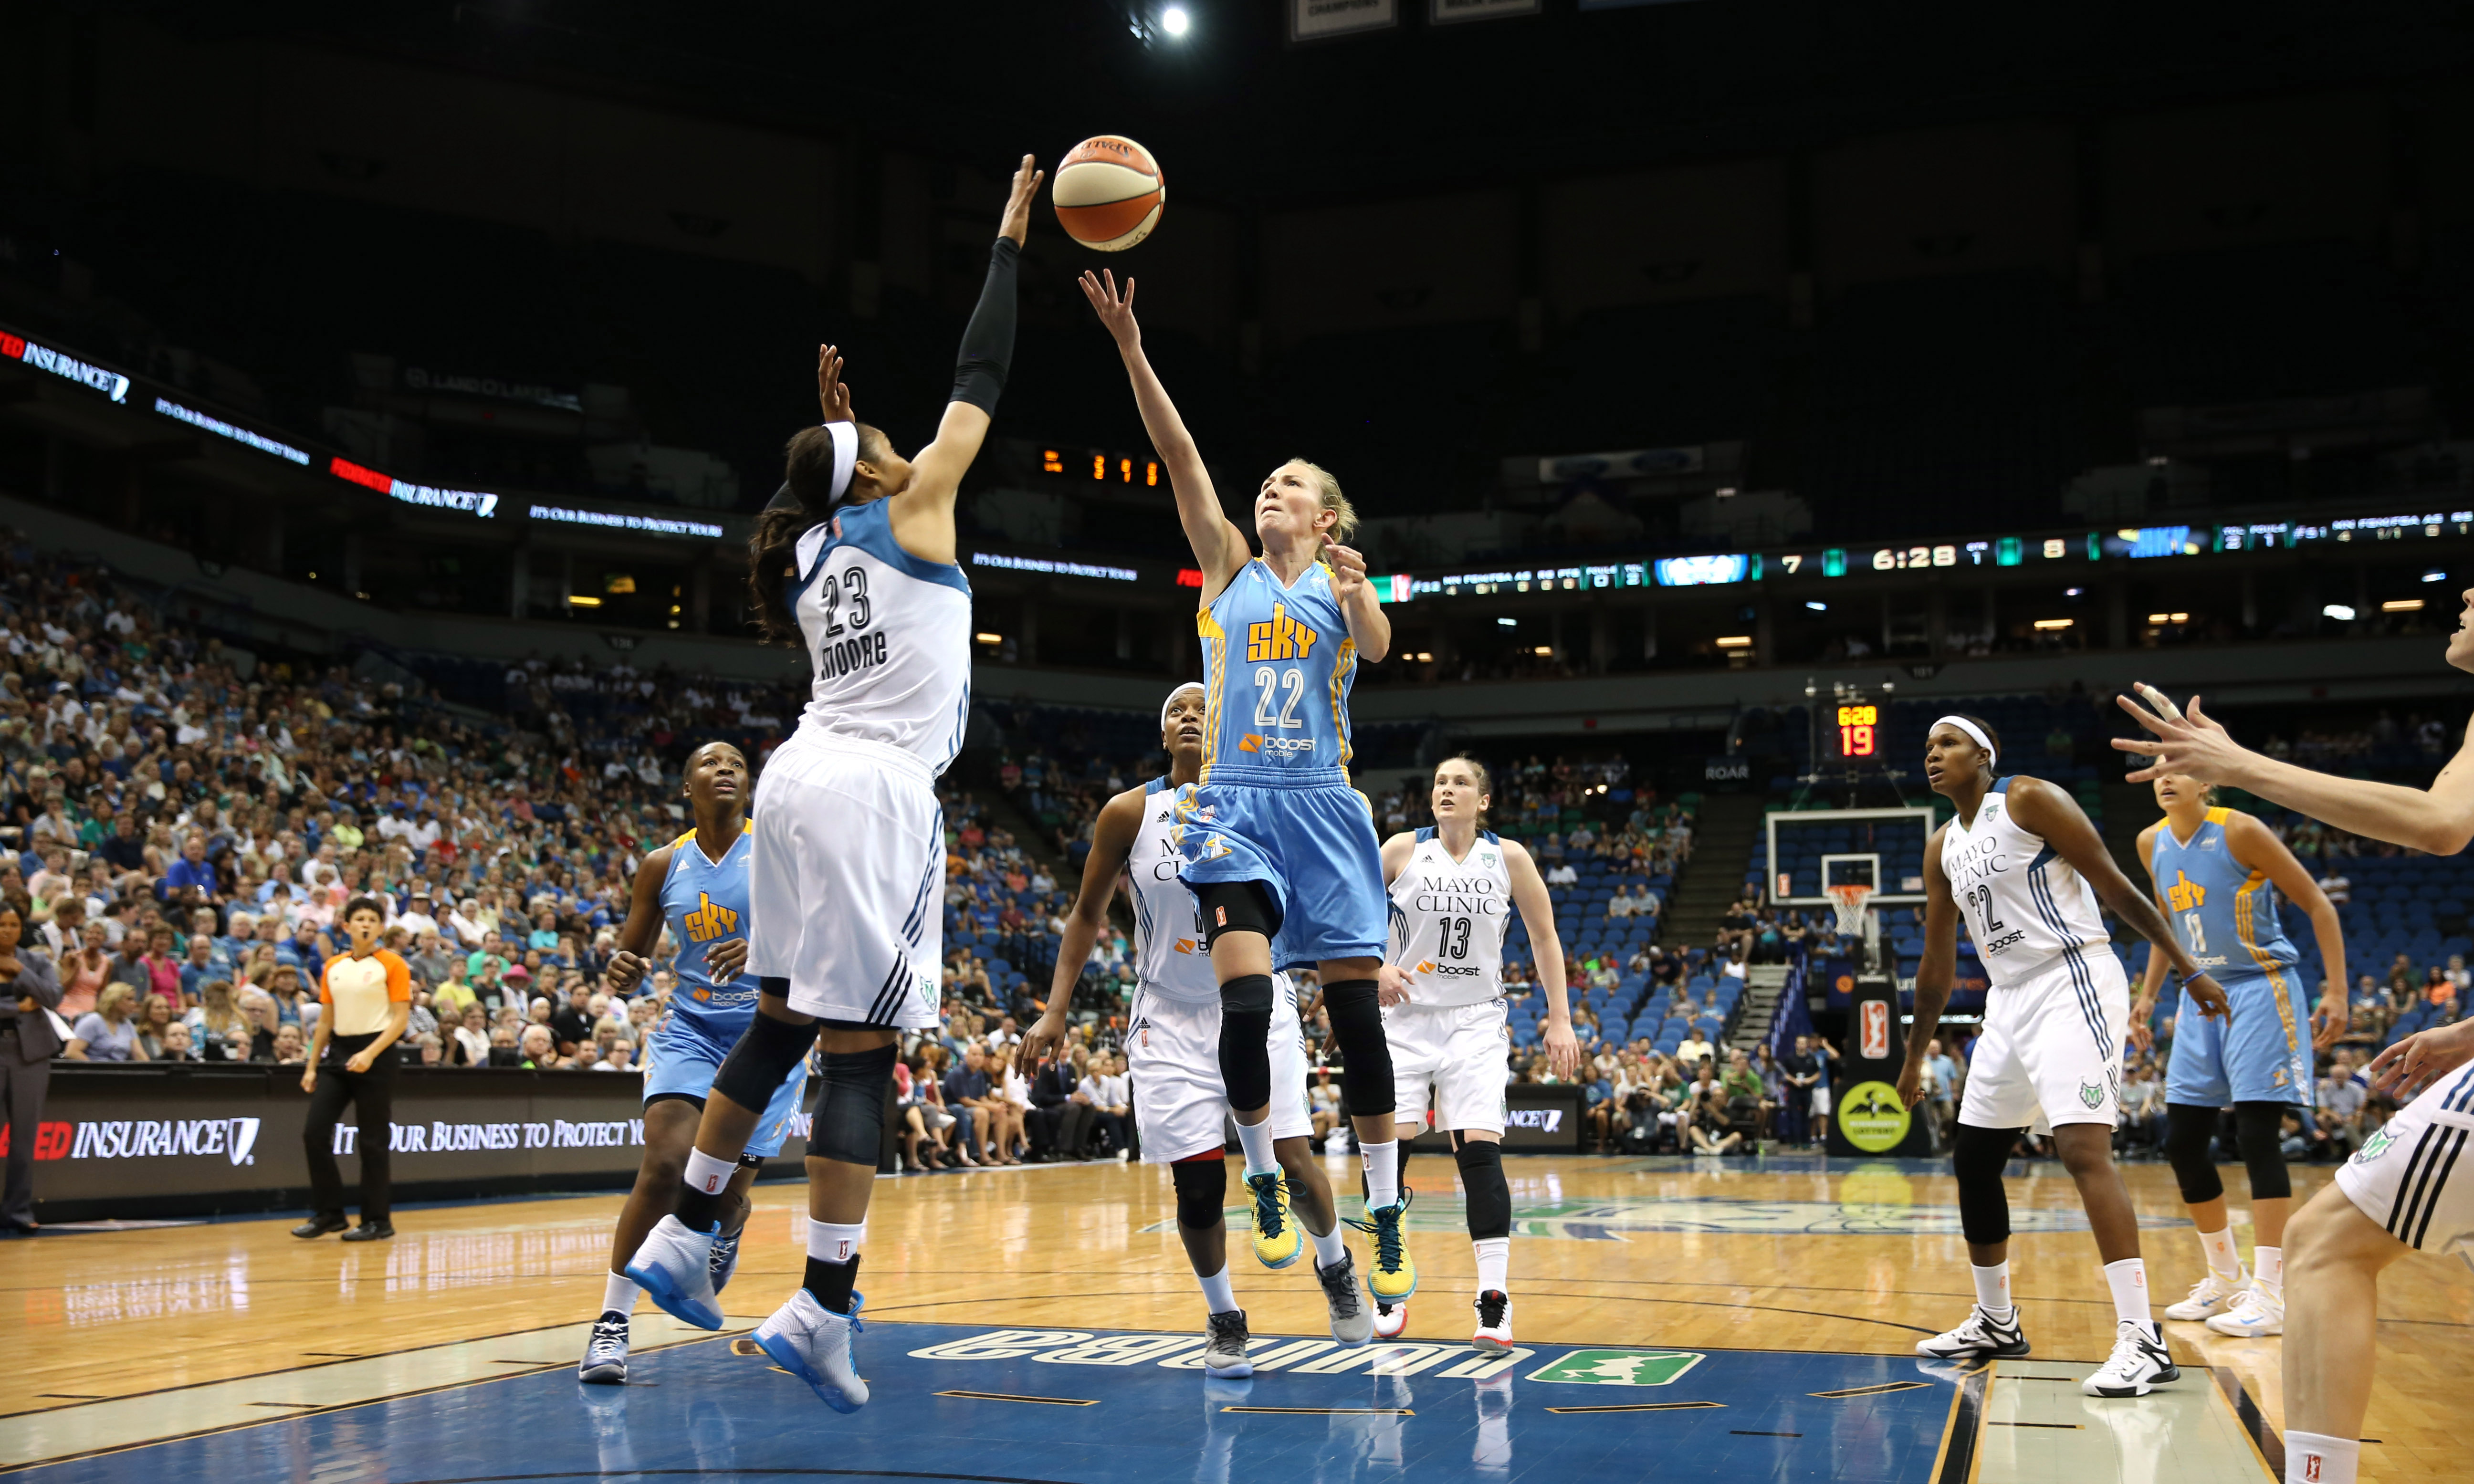 Sky guard Courtney Vandersloot simply could not get her offense going against a stingy Lynx defense. Vandersloot finished with just six points on 3-of-8 shooting to go with just three assists.